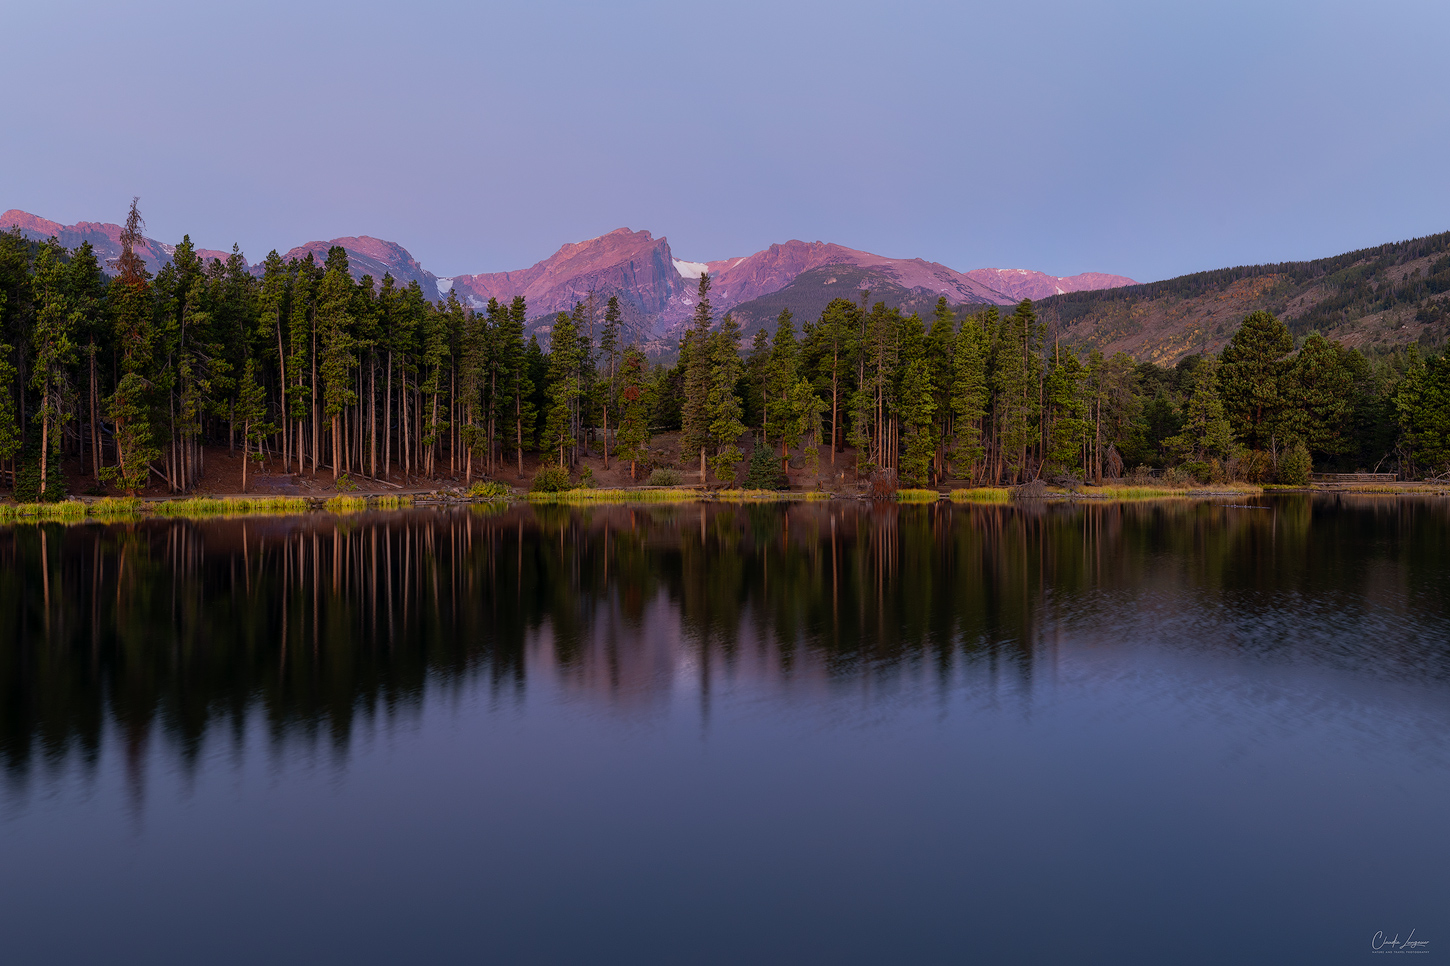 Reflection of the Continental Divide at Sprague Lake in Rocky Mountain National Park.